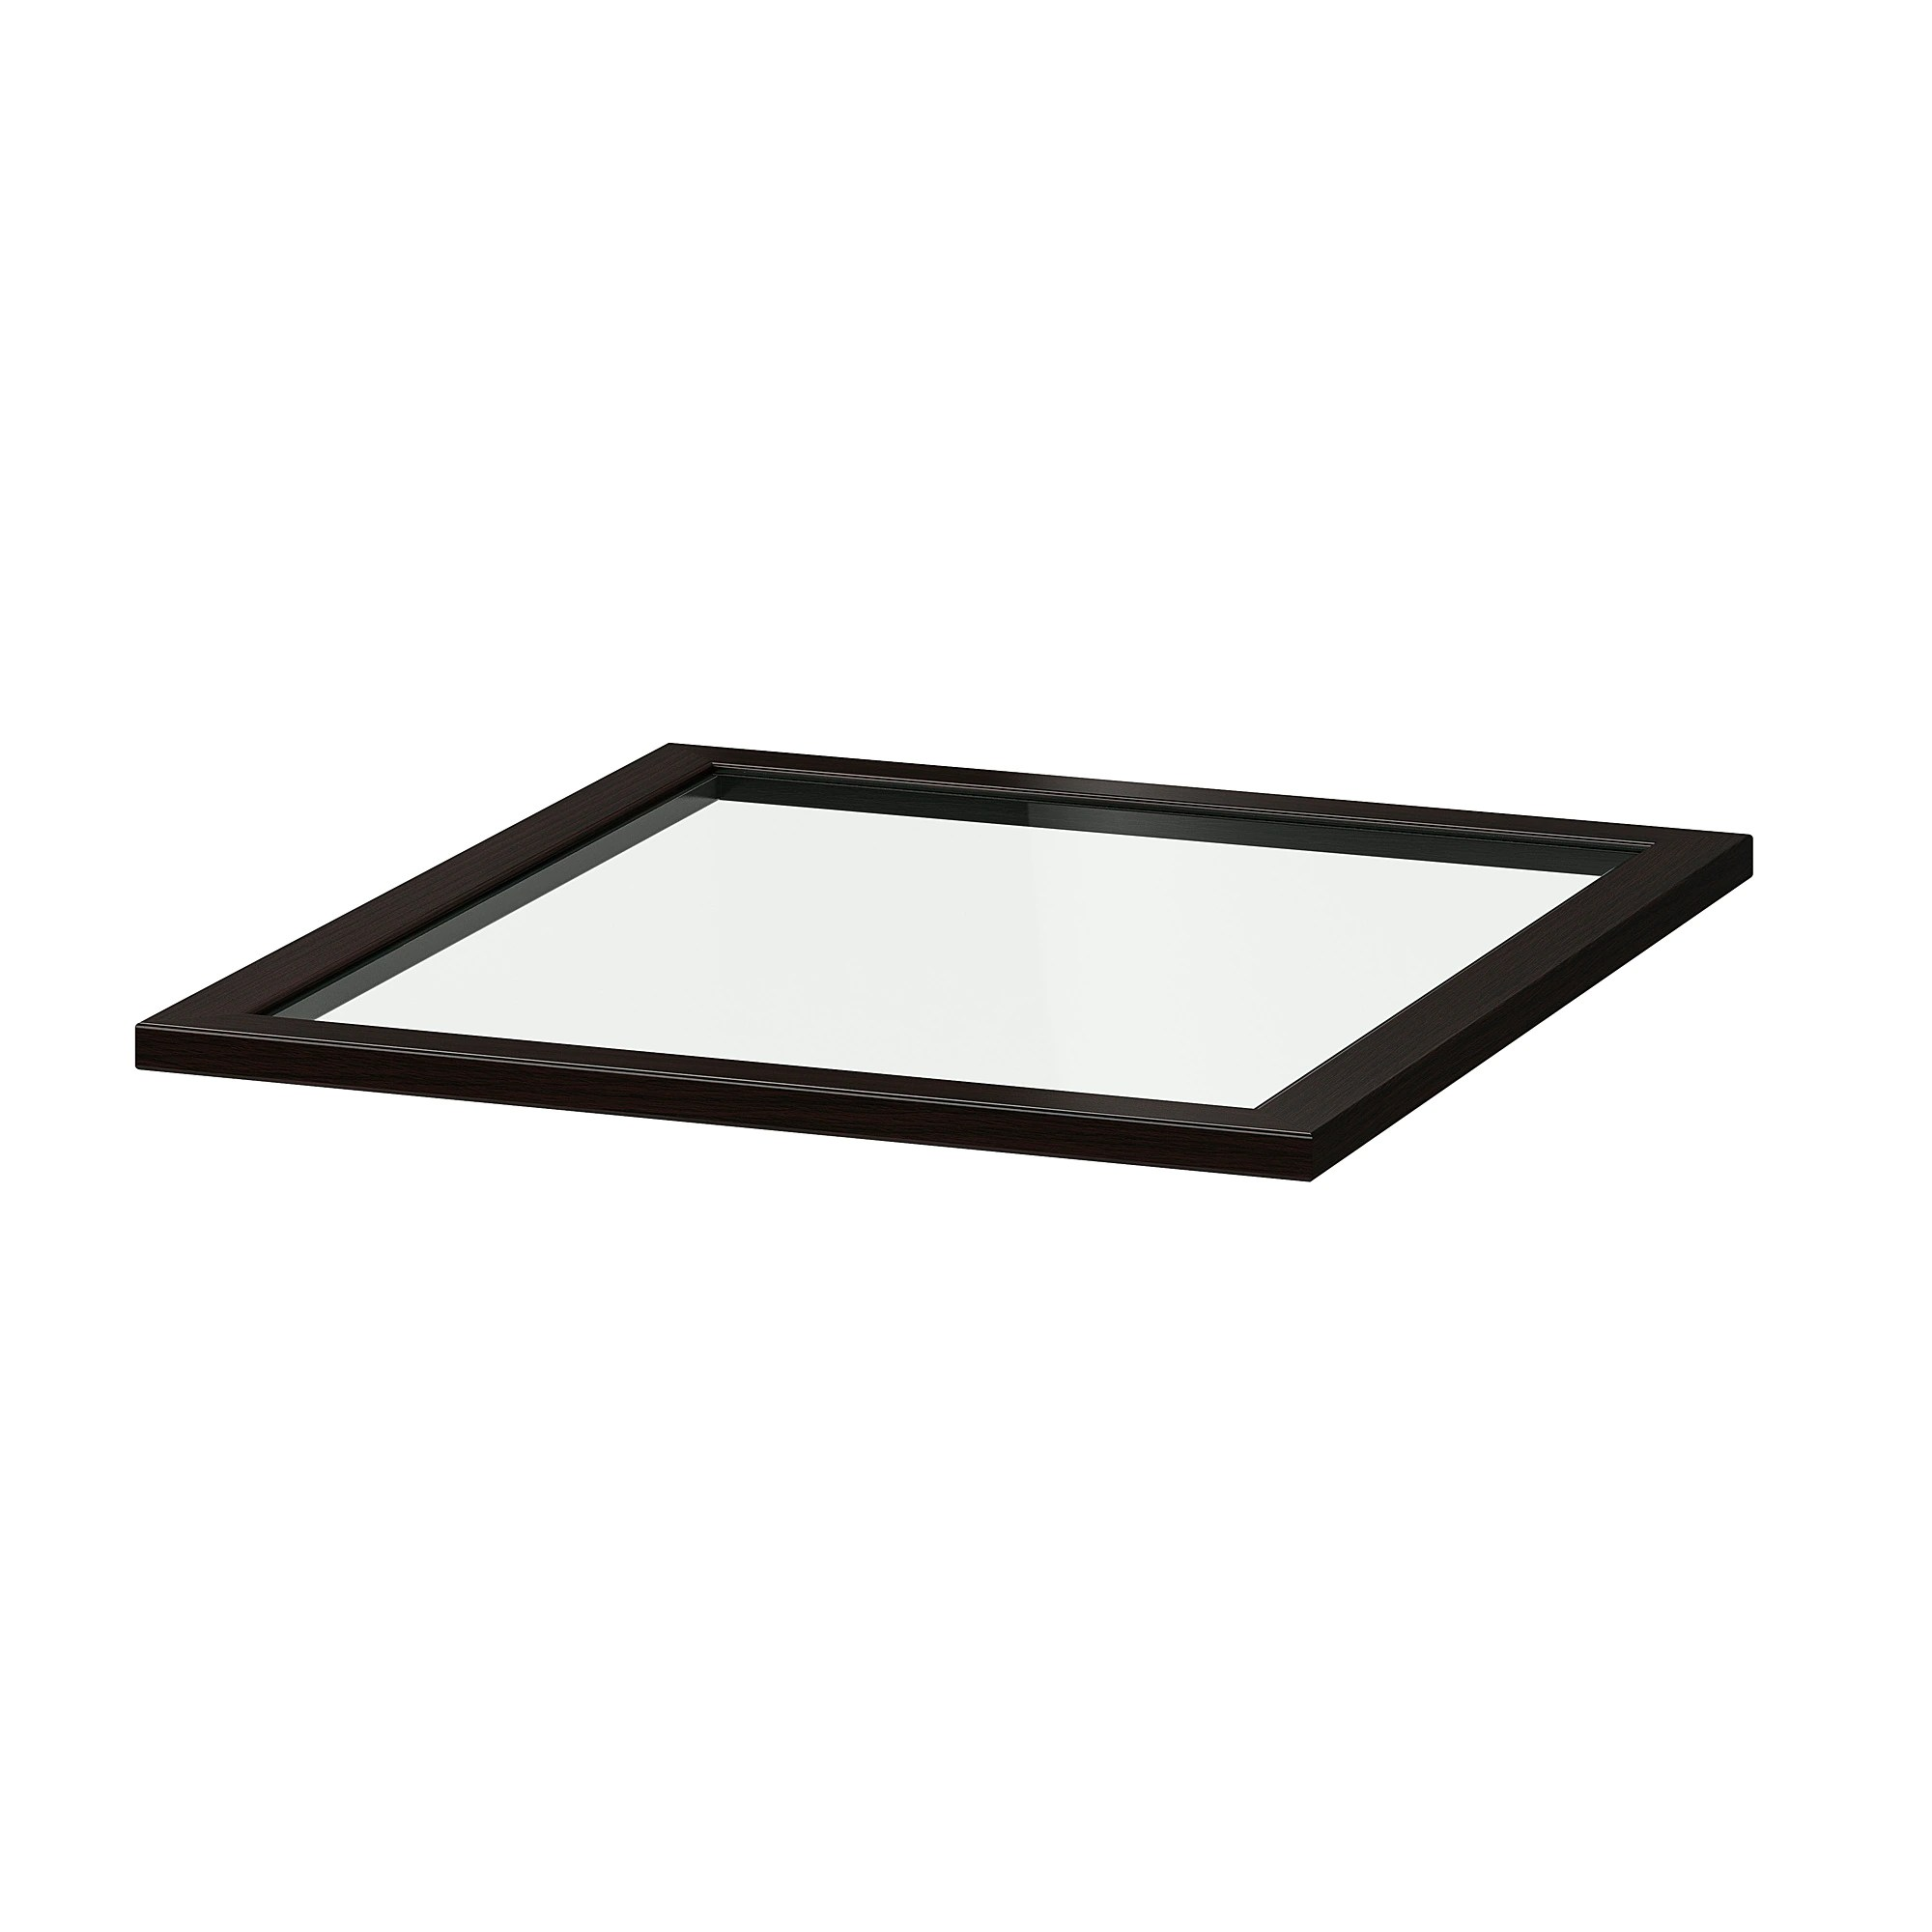 Ikea Pax Click And Collect Glass Shelf Komplement Black Brown